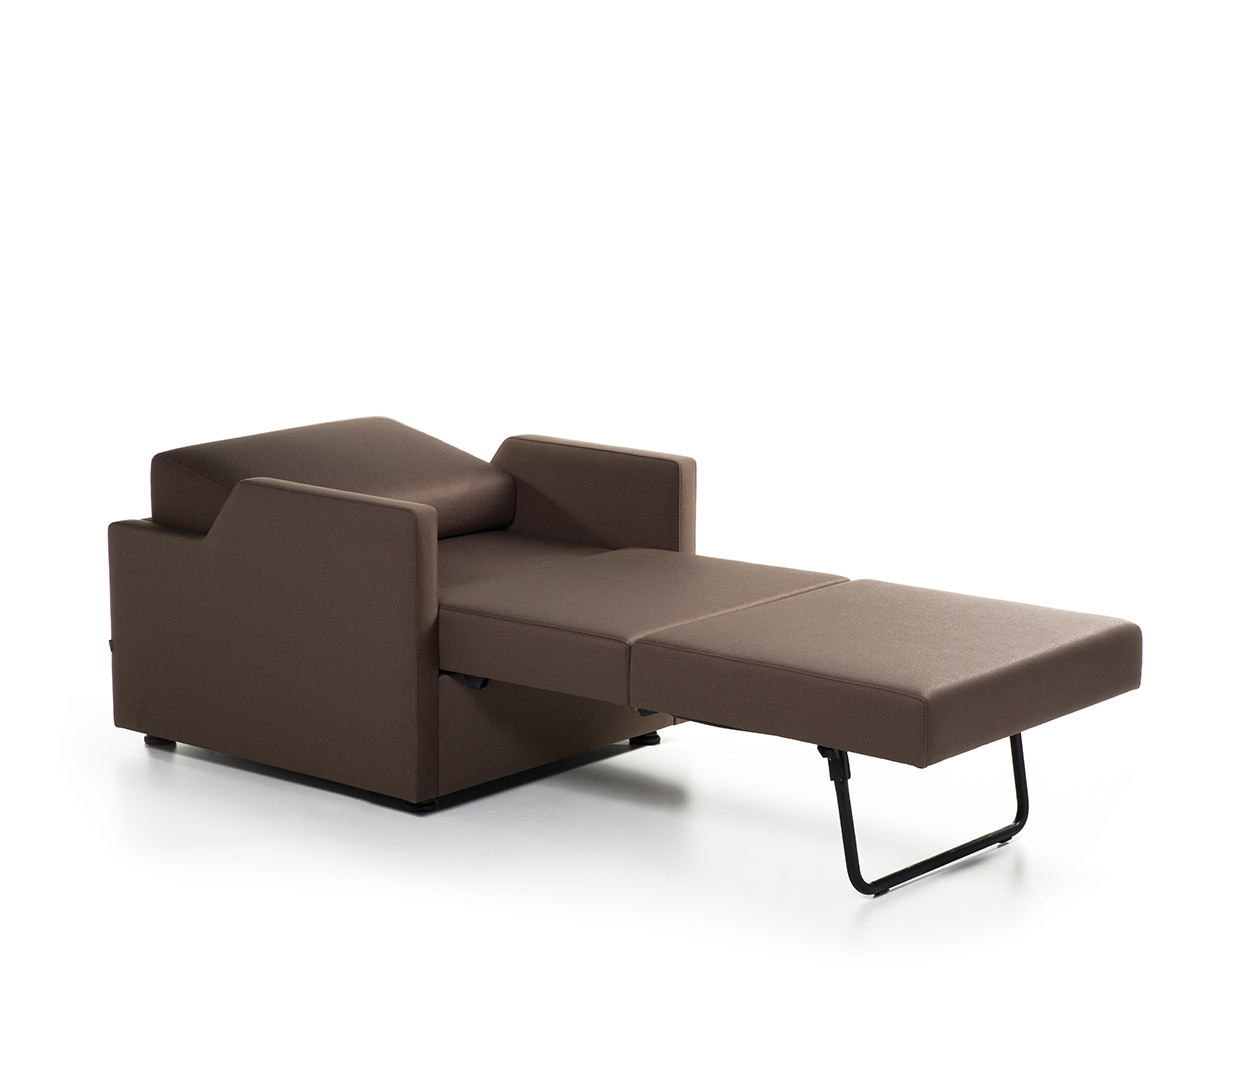 Fold sofa bed comseat australia for Sofa bed australia